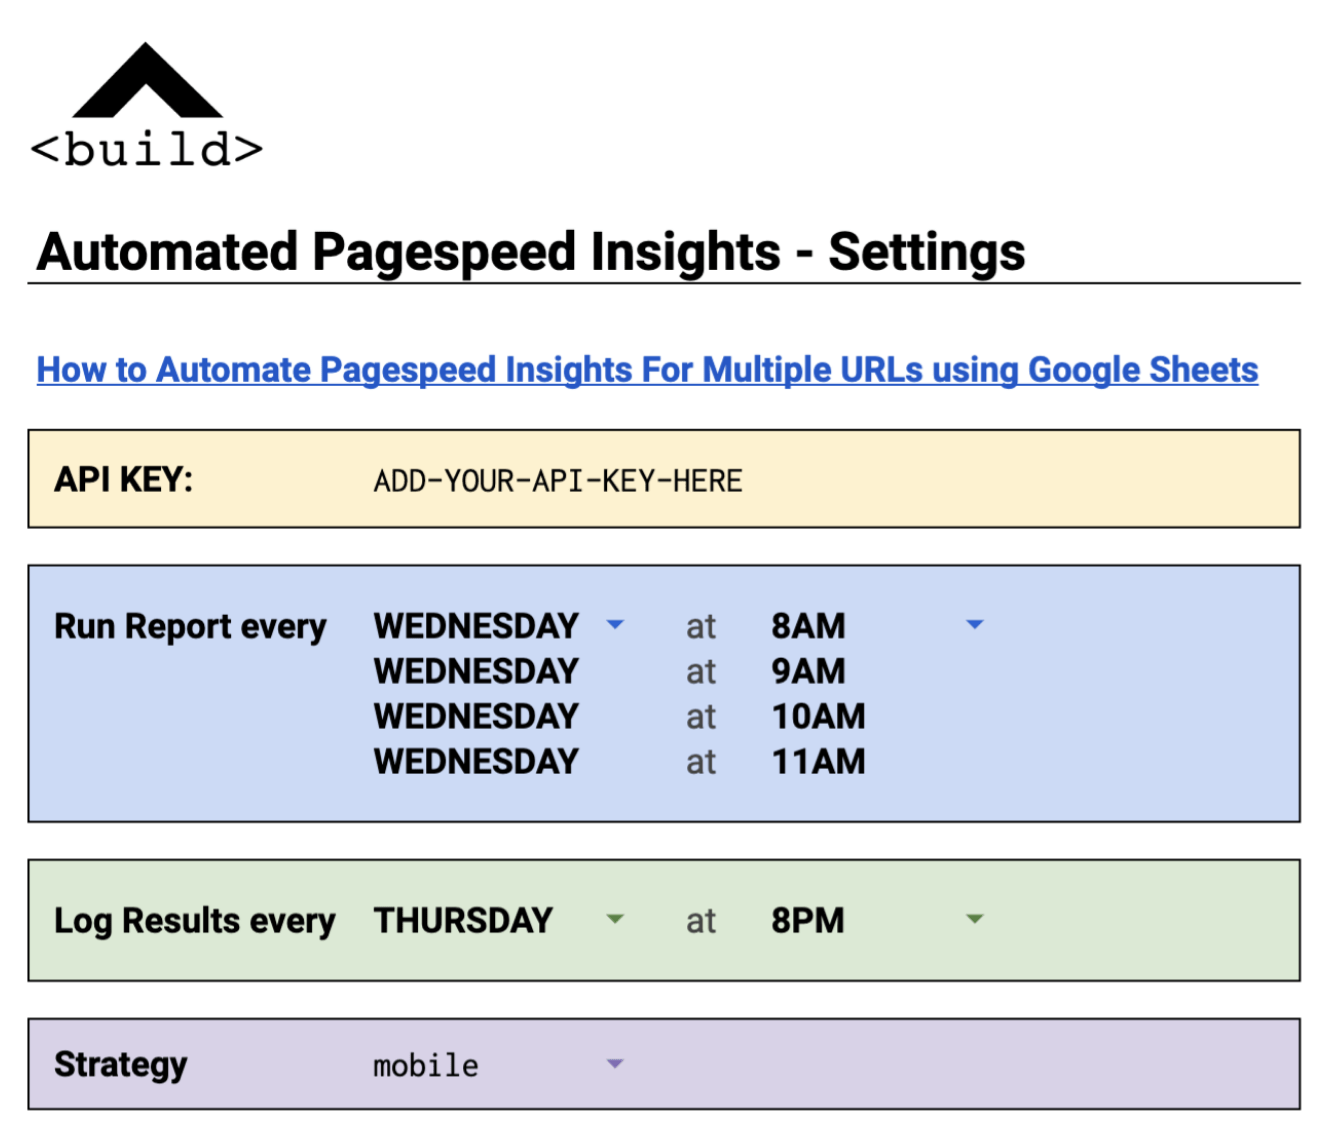 Automating Pagespeed Insights Using Google Sheets [Updated Template]